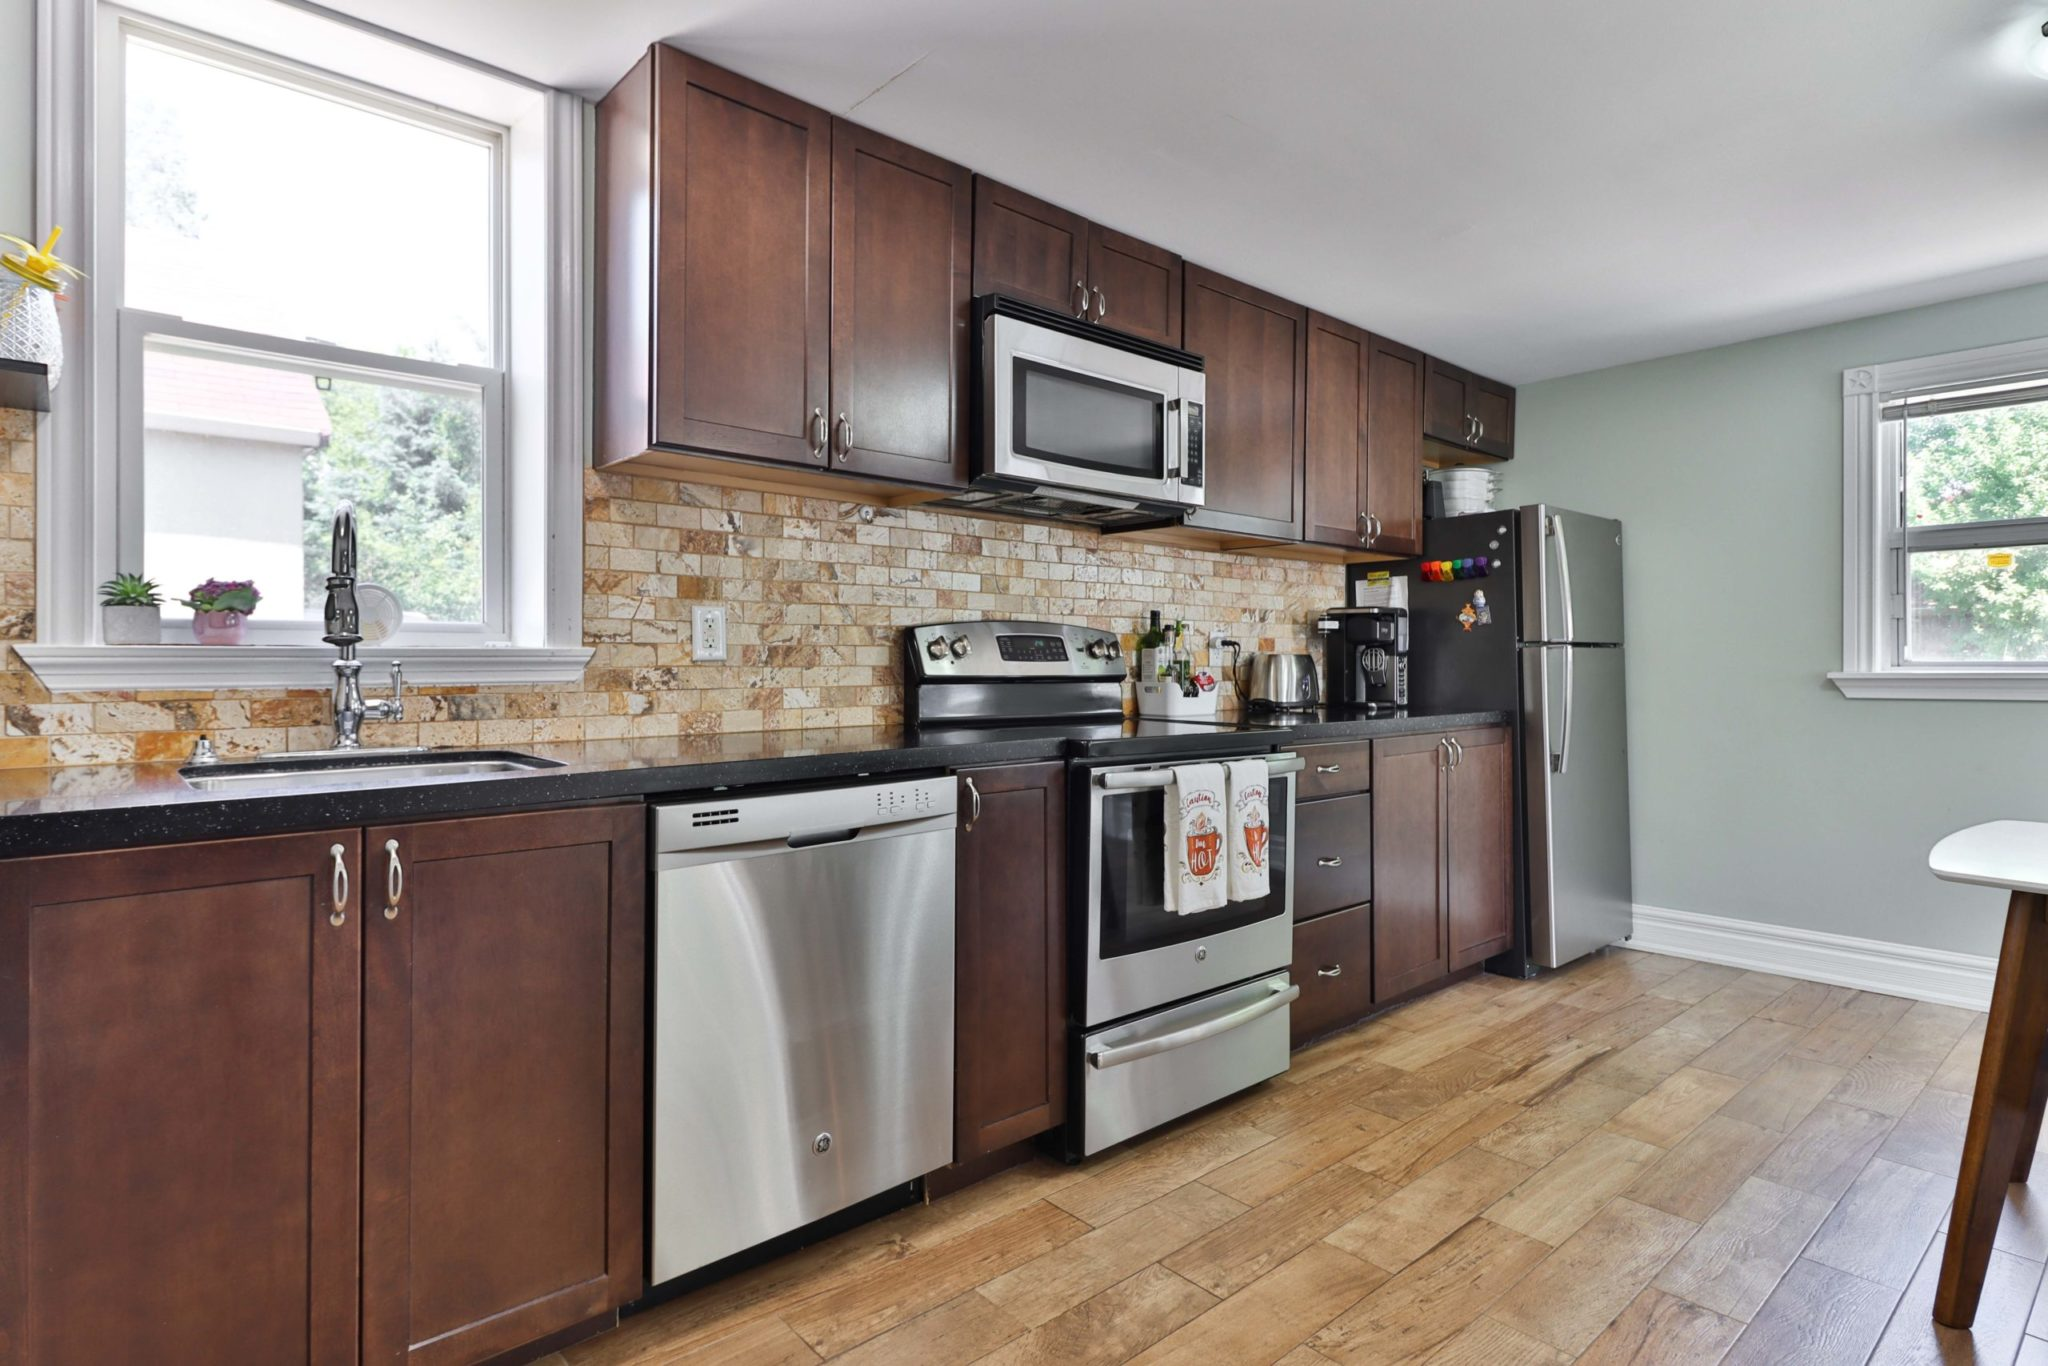 Large kitchen of 117 Phillip Ave with lots of drawers, cabinets and cupboards.